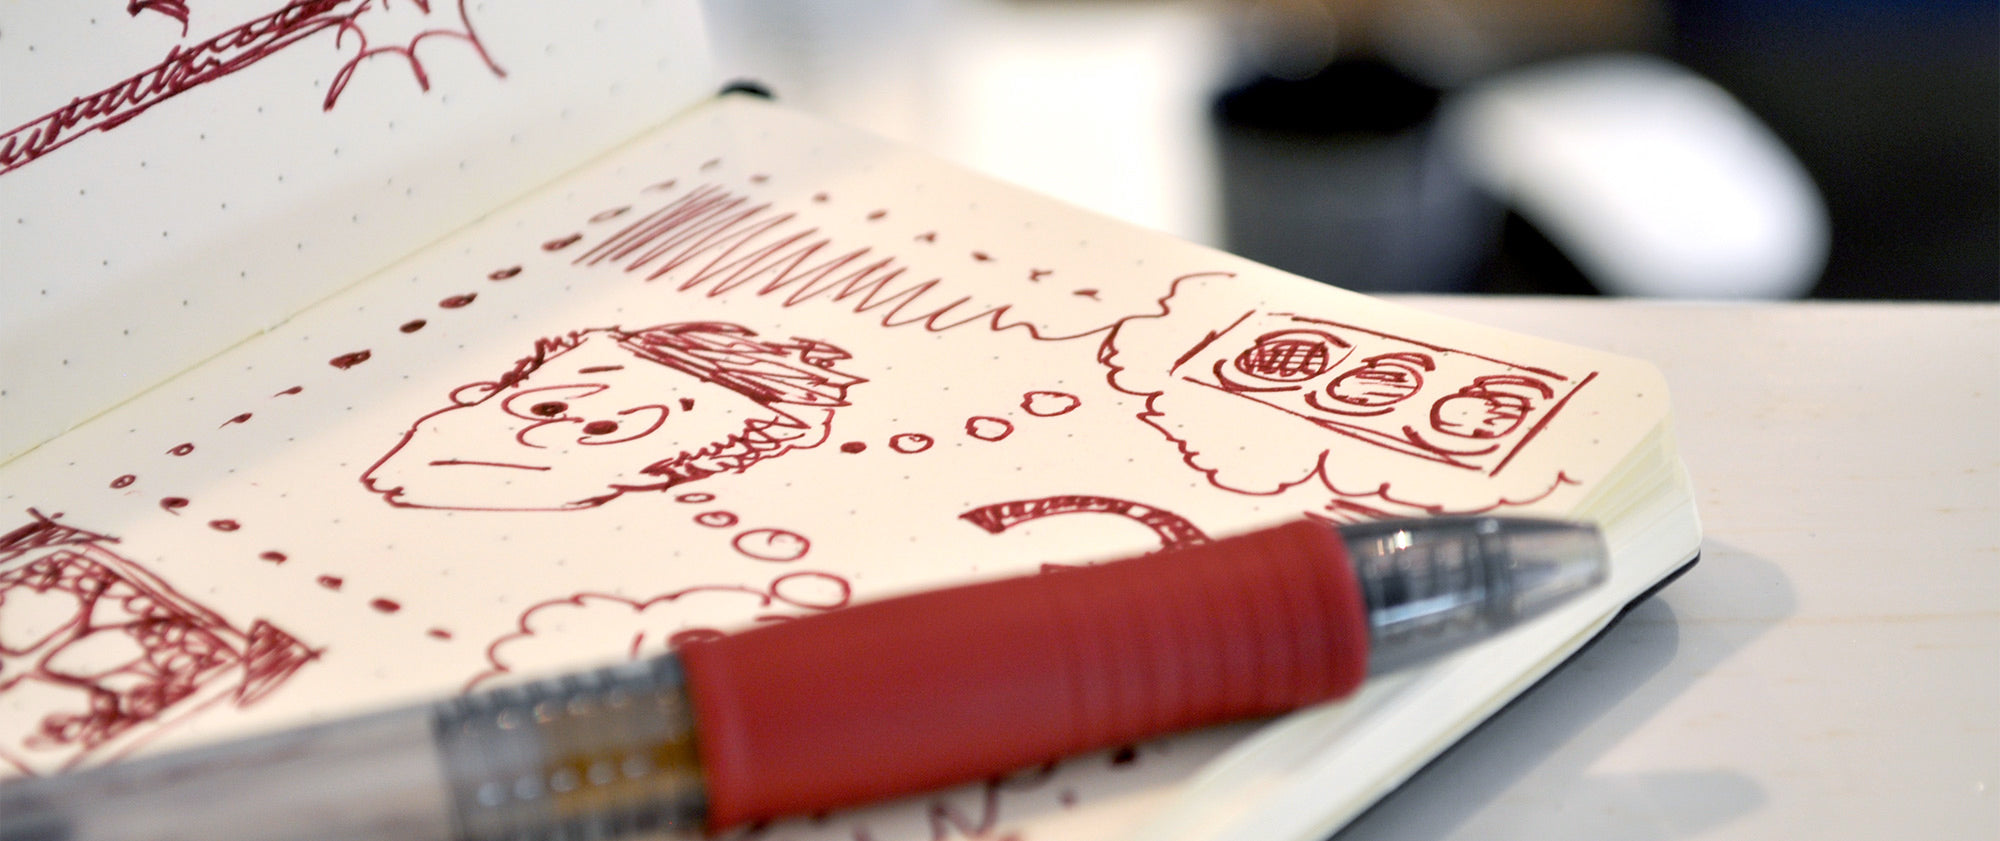 pocket-size notebook with doodling notes